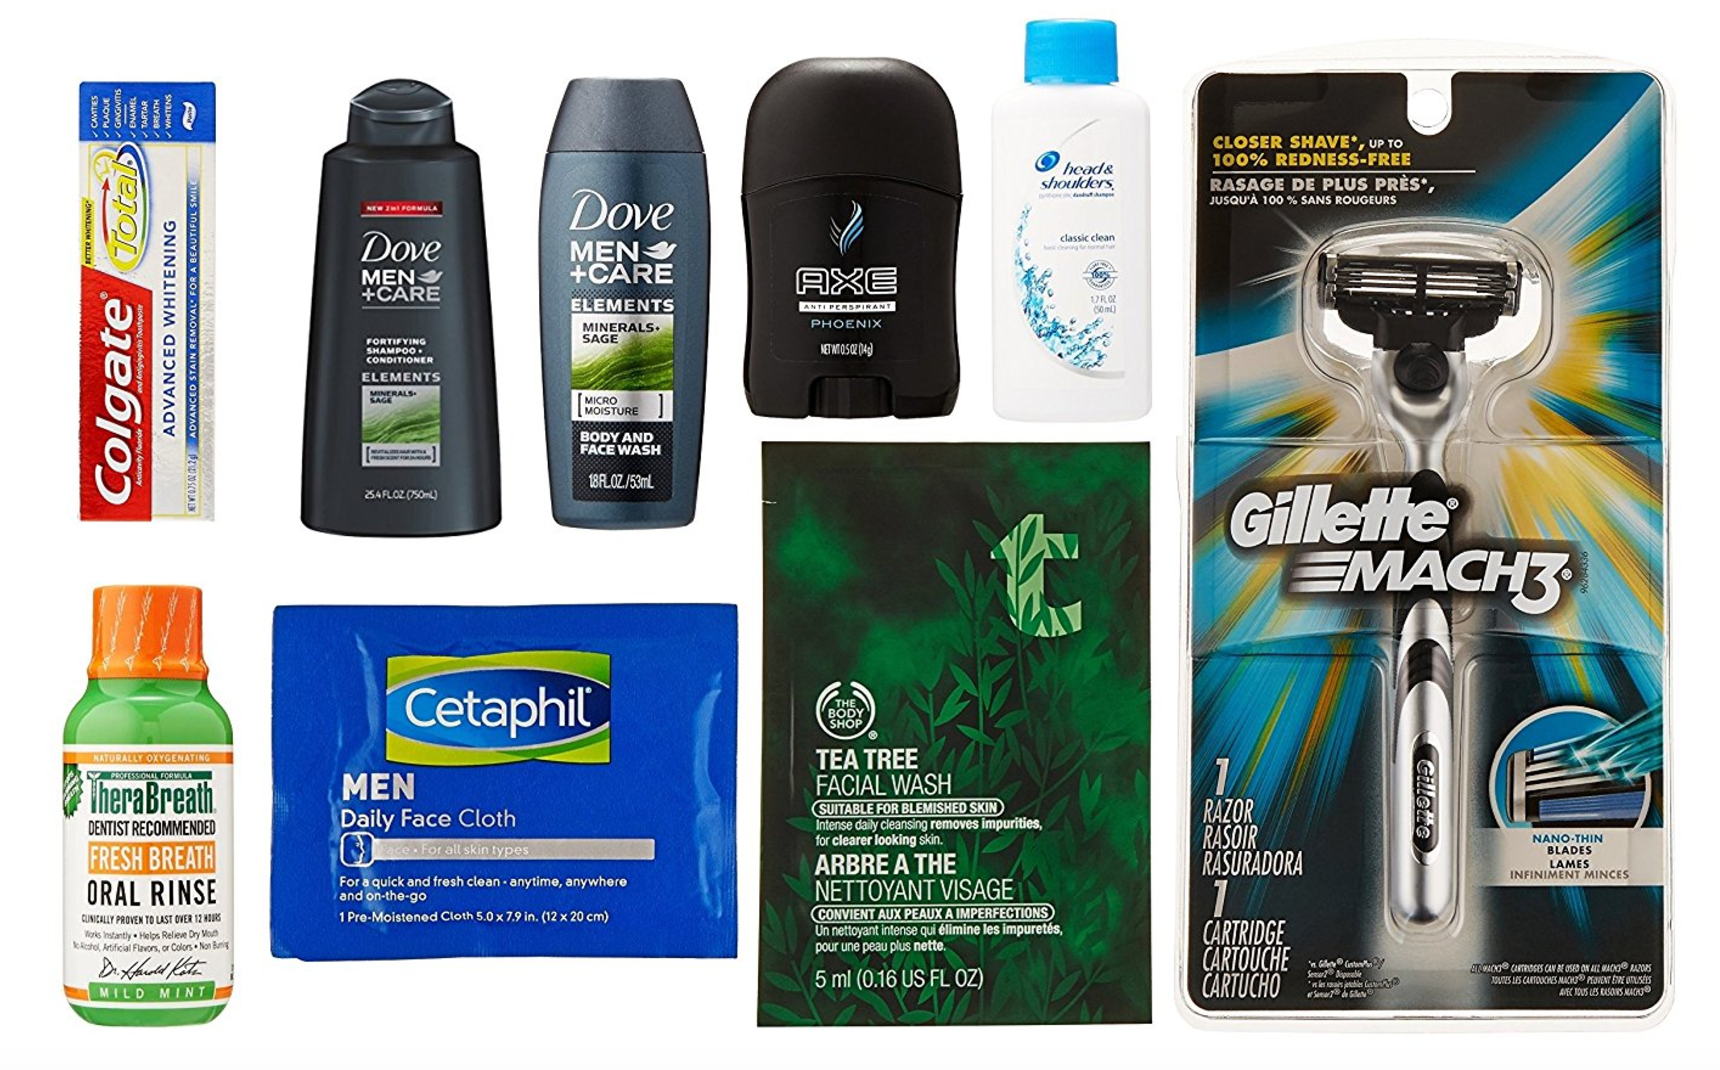 *HOT HOT HOT* Men's Grooming Sample Box, 8 or more items -- FREE After $9.99 Credit!